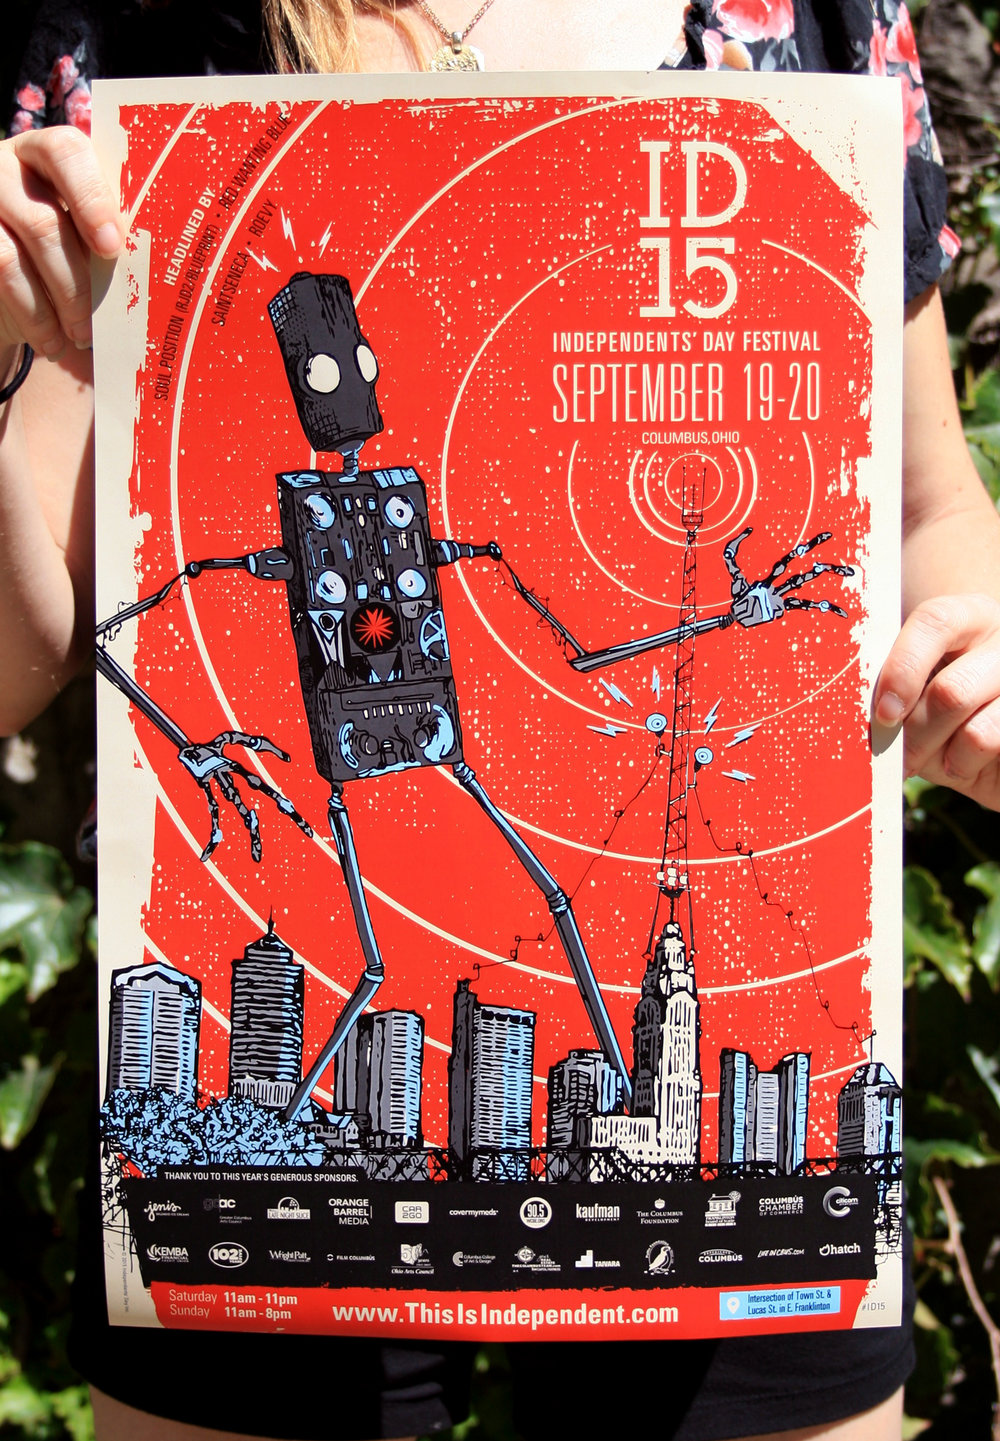 independents-day-festival-2015_robot-1